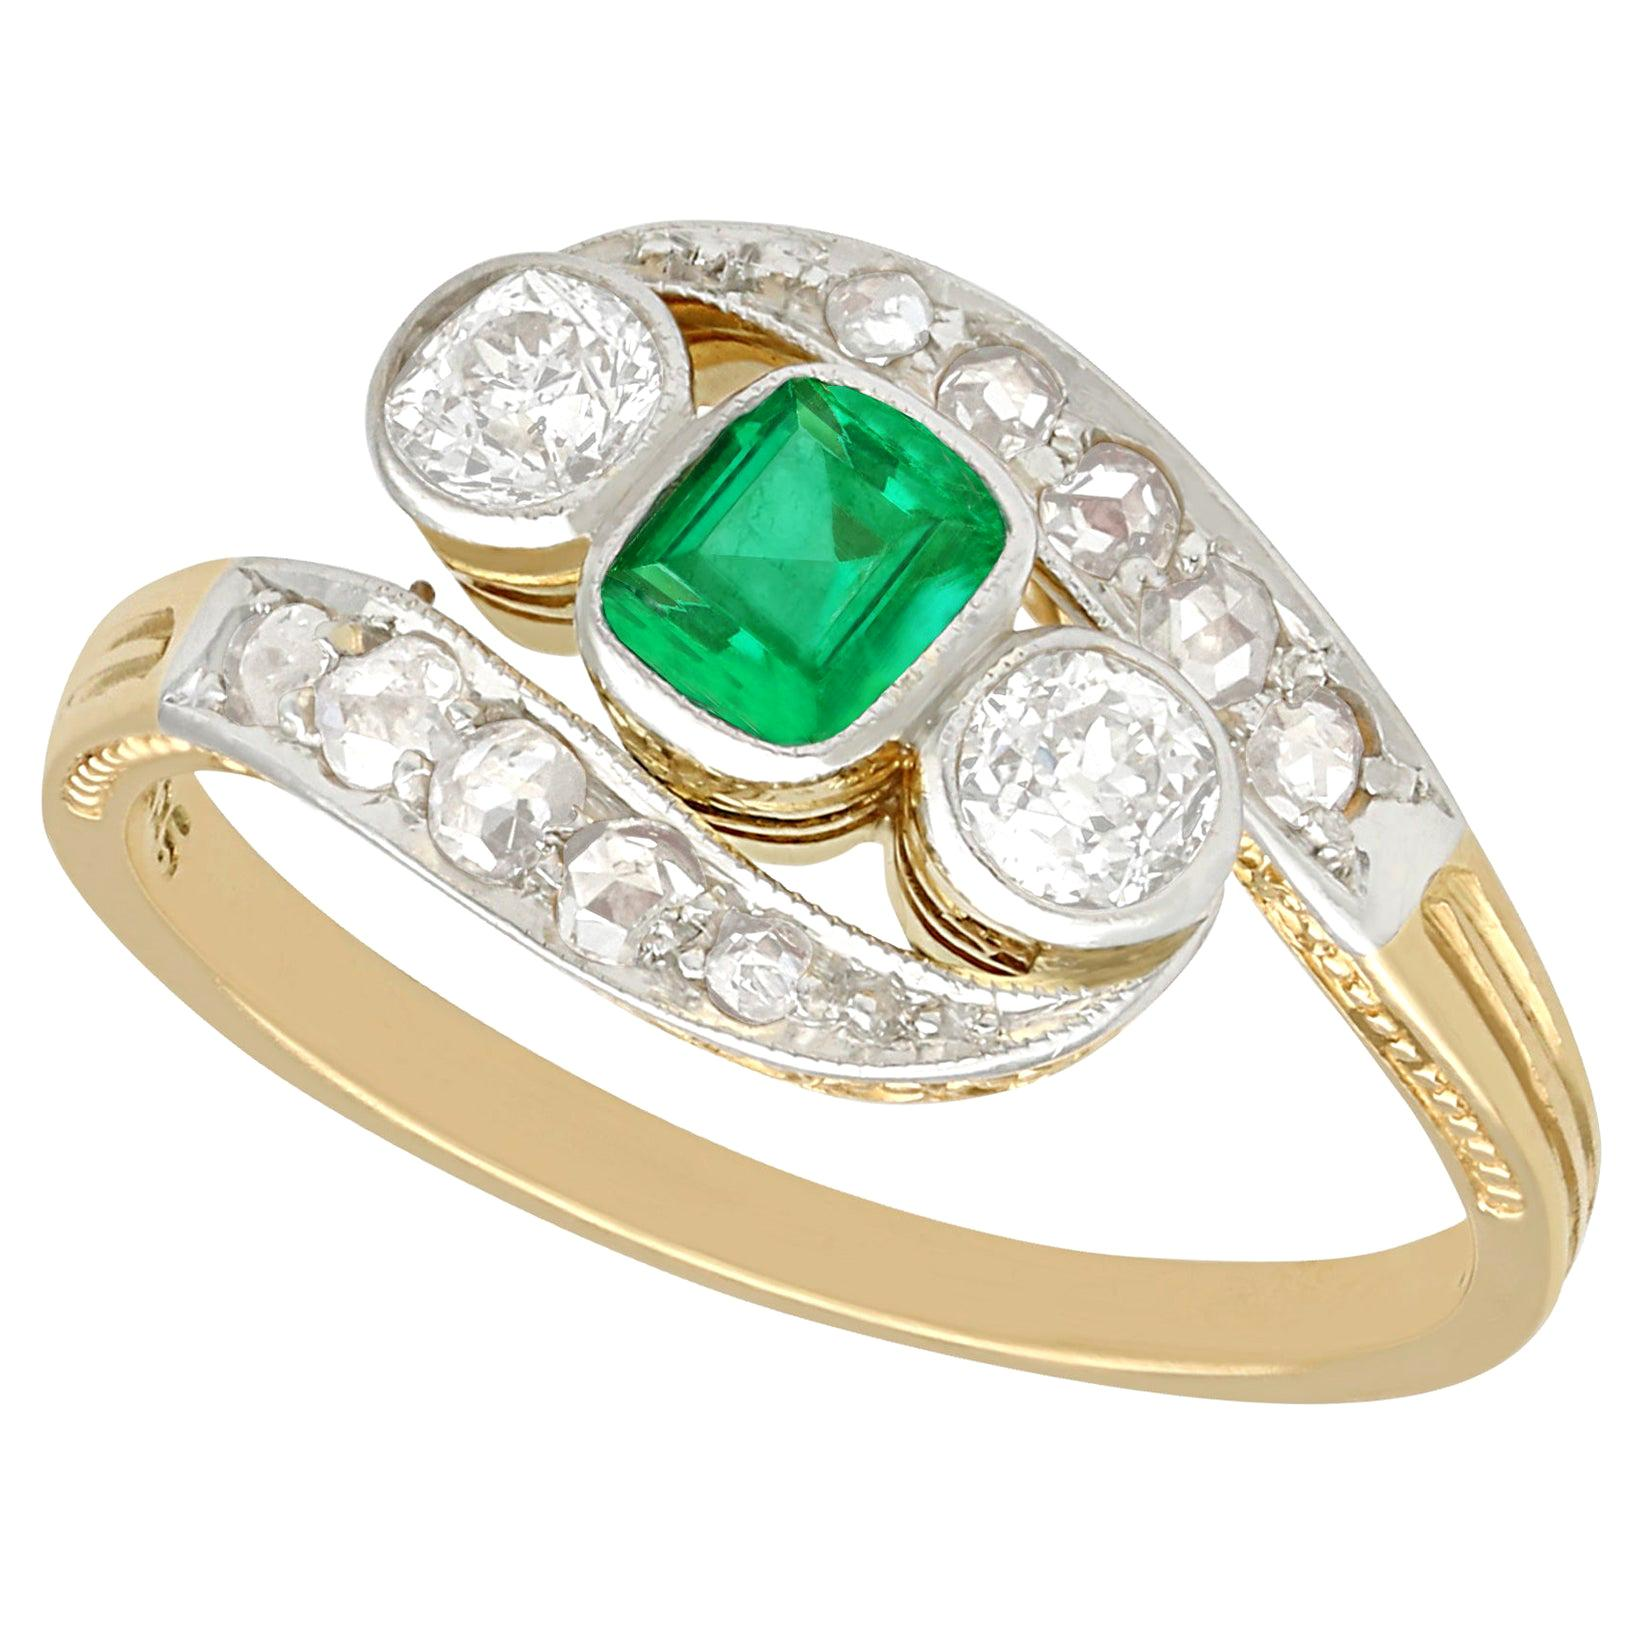 Antique 1920s Emerald and Diamond Yellow Gold Twist Ring